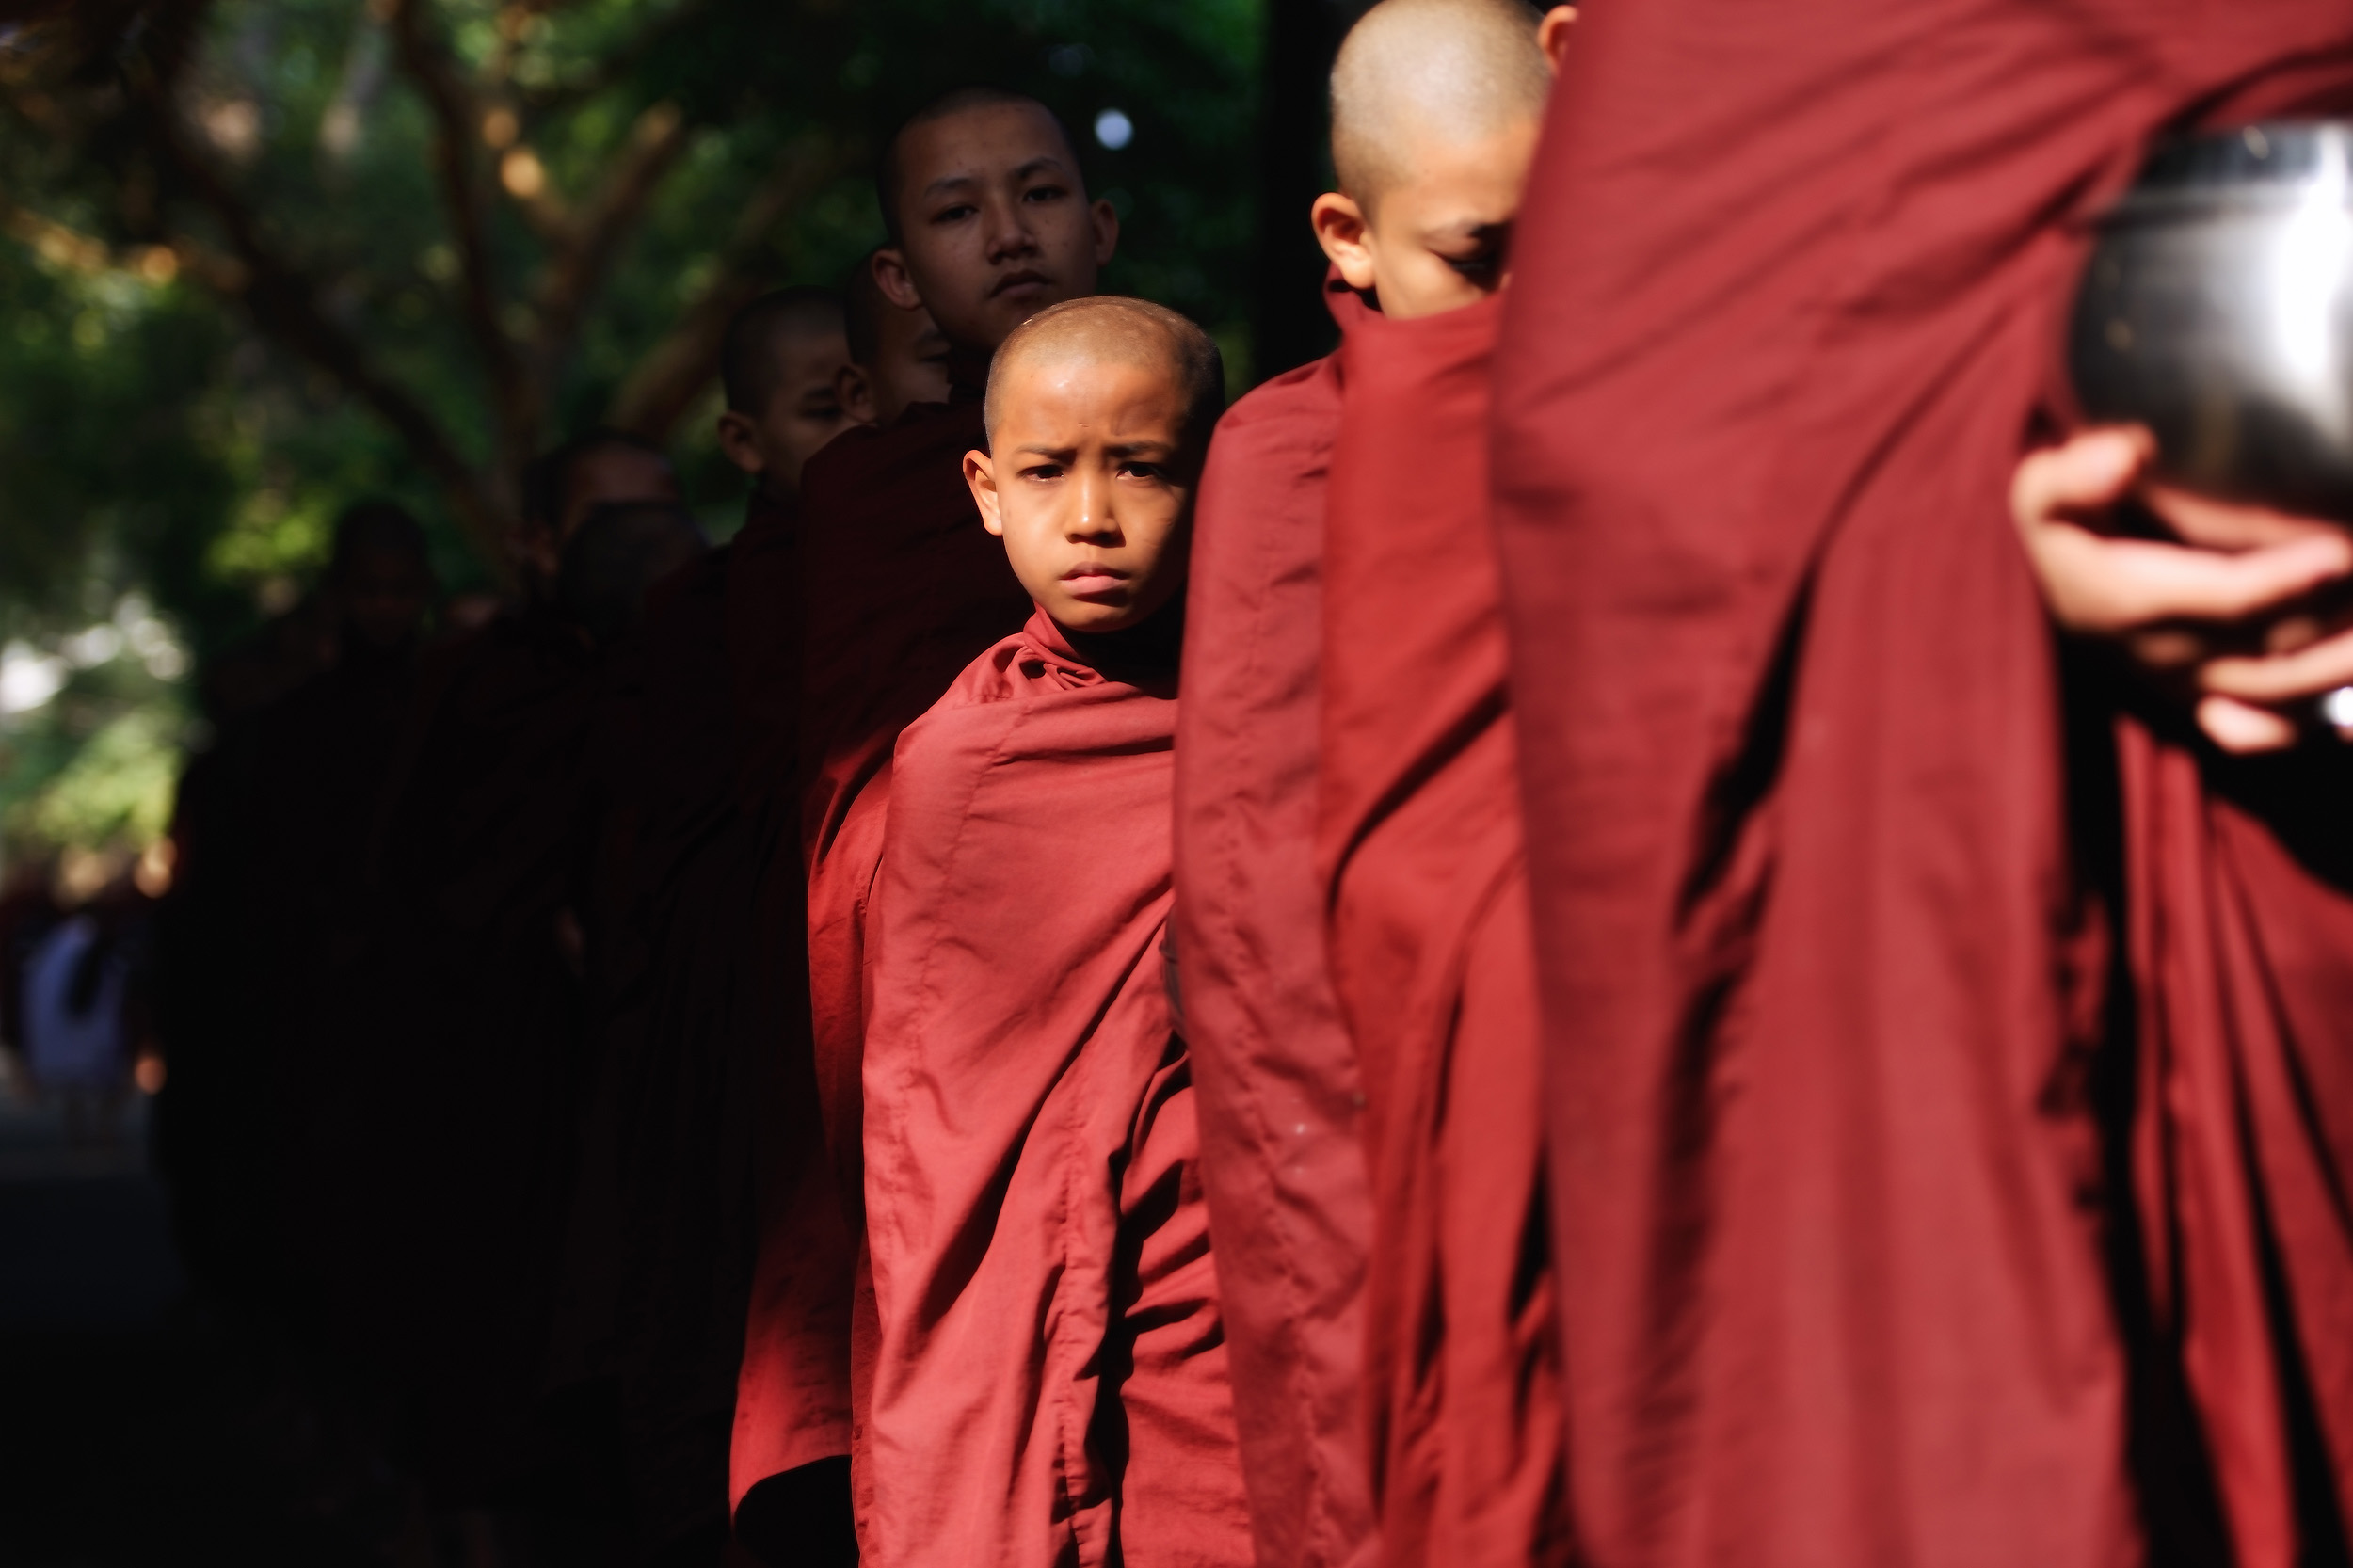 Mahagandayon Monks   Long lines of monks line up outside the dining hall in Mahagandayon Monastery, Amarapura